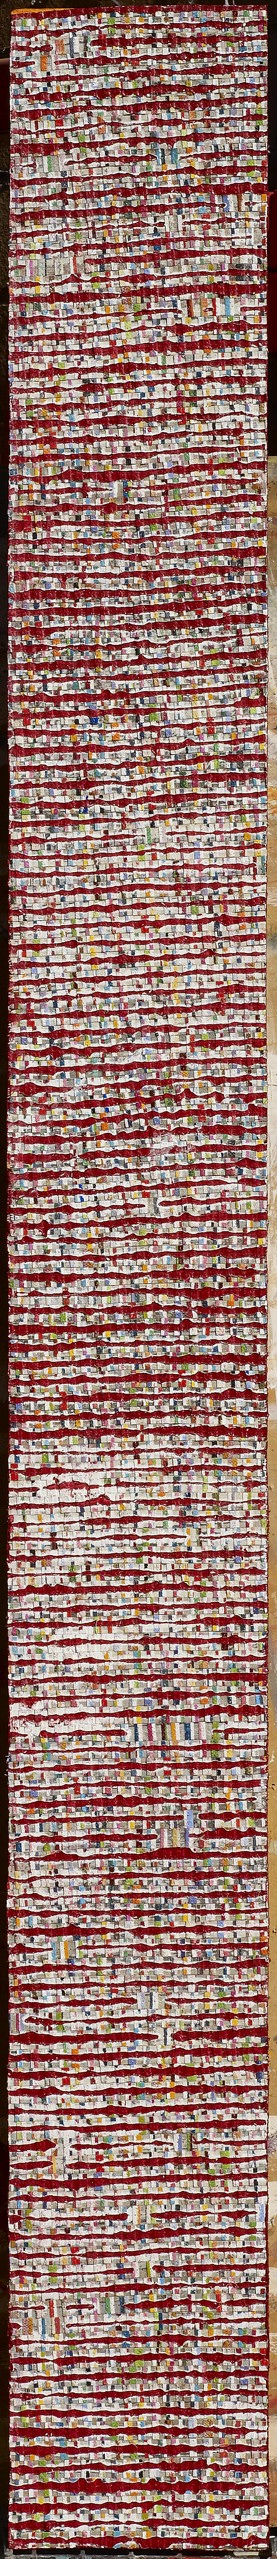 Eveline Kotai - Totem/Red, 2012, mixed media stitched collage, 140x12cm (private collection)